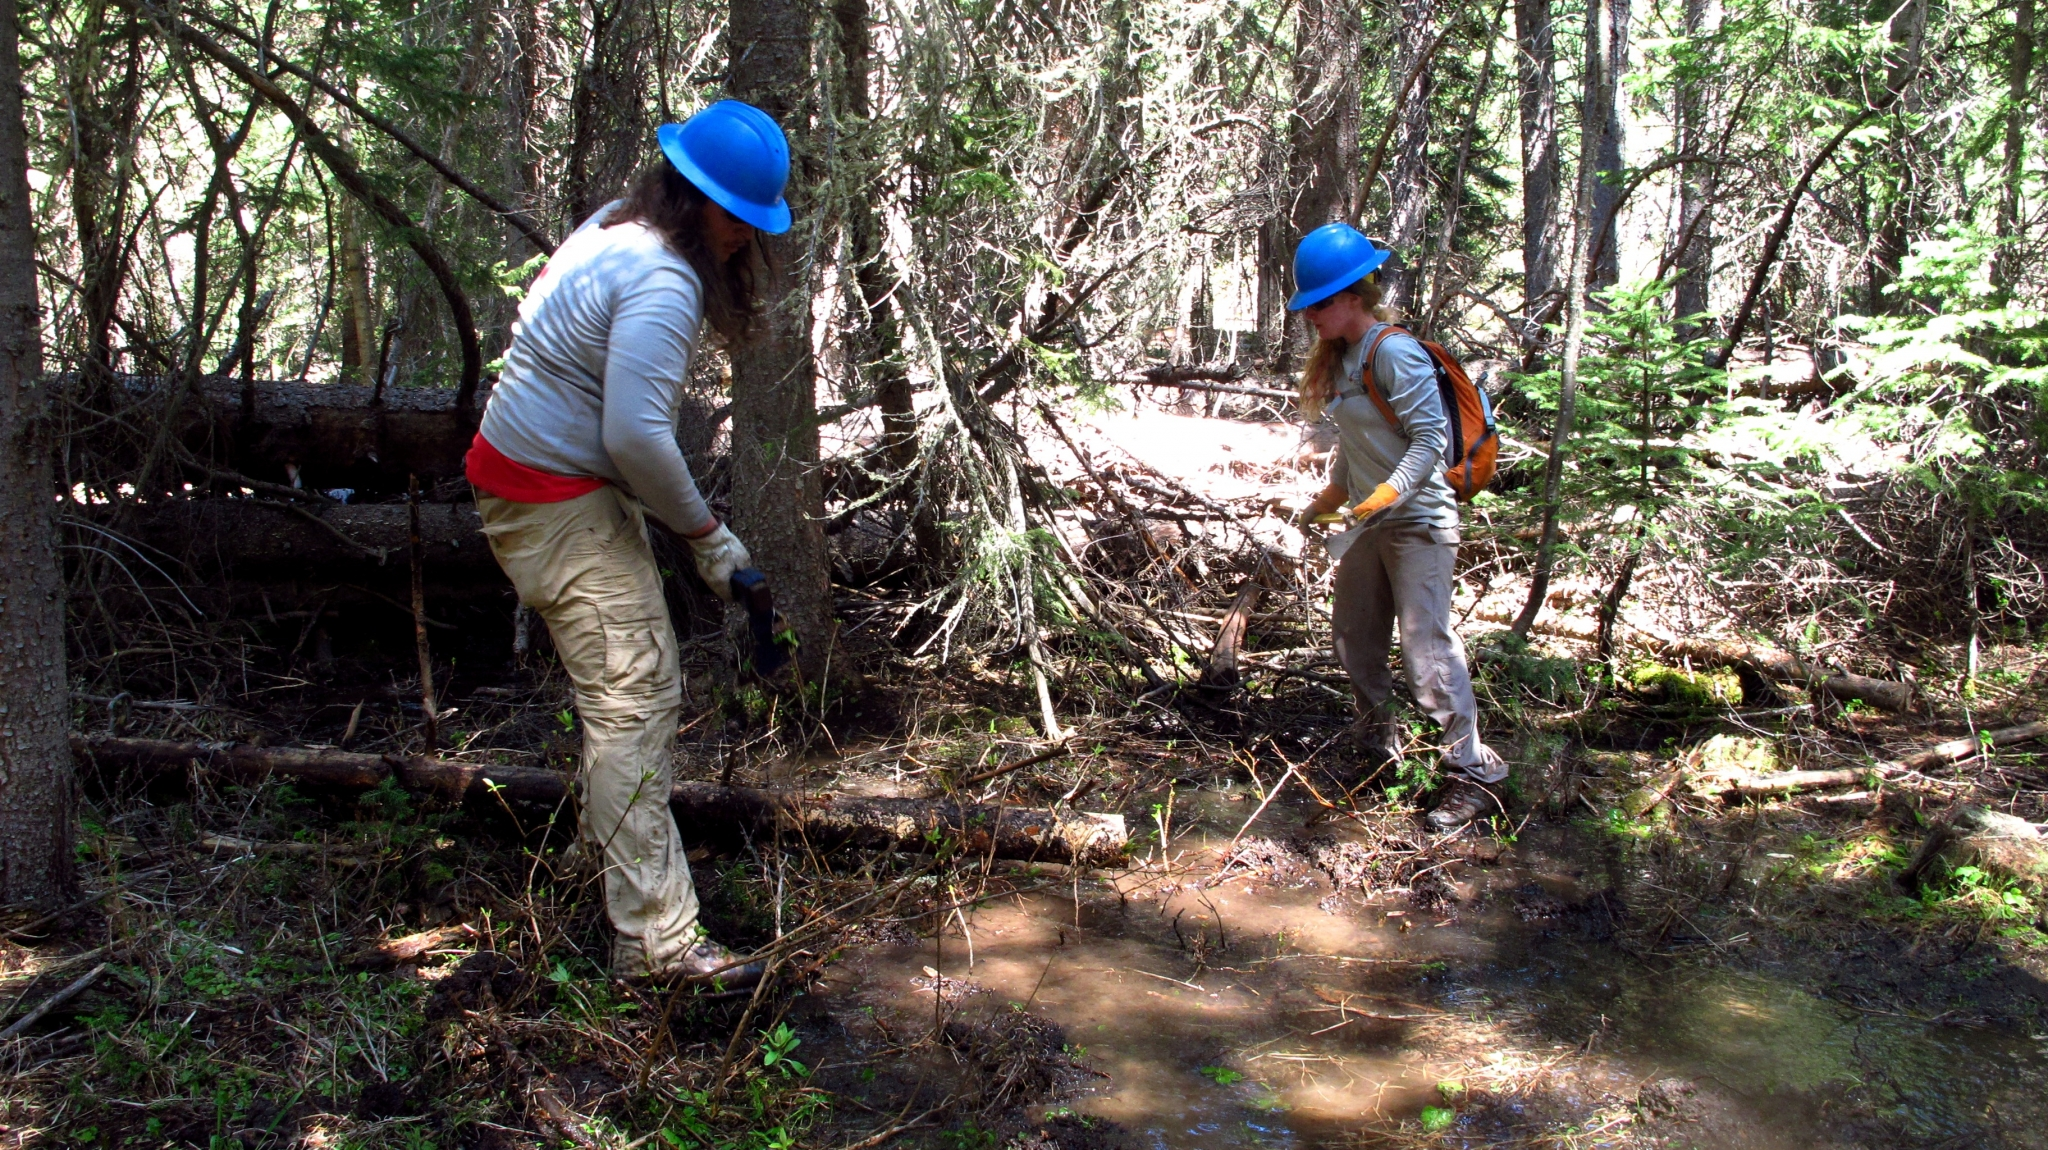 Tommy and Shelby digging a drainage to divert water from the trail.